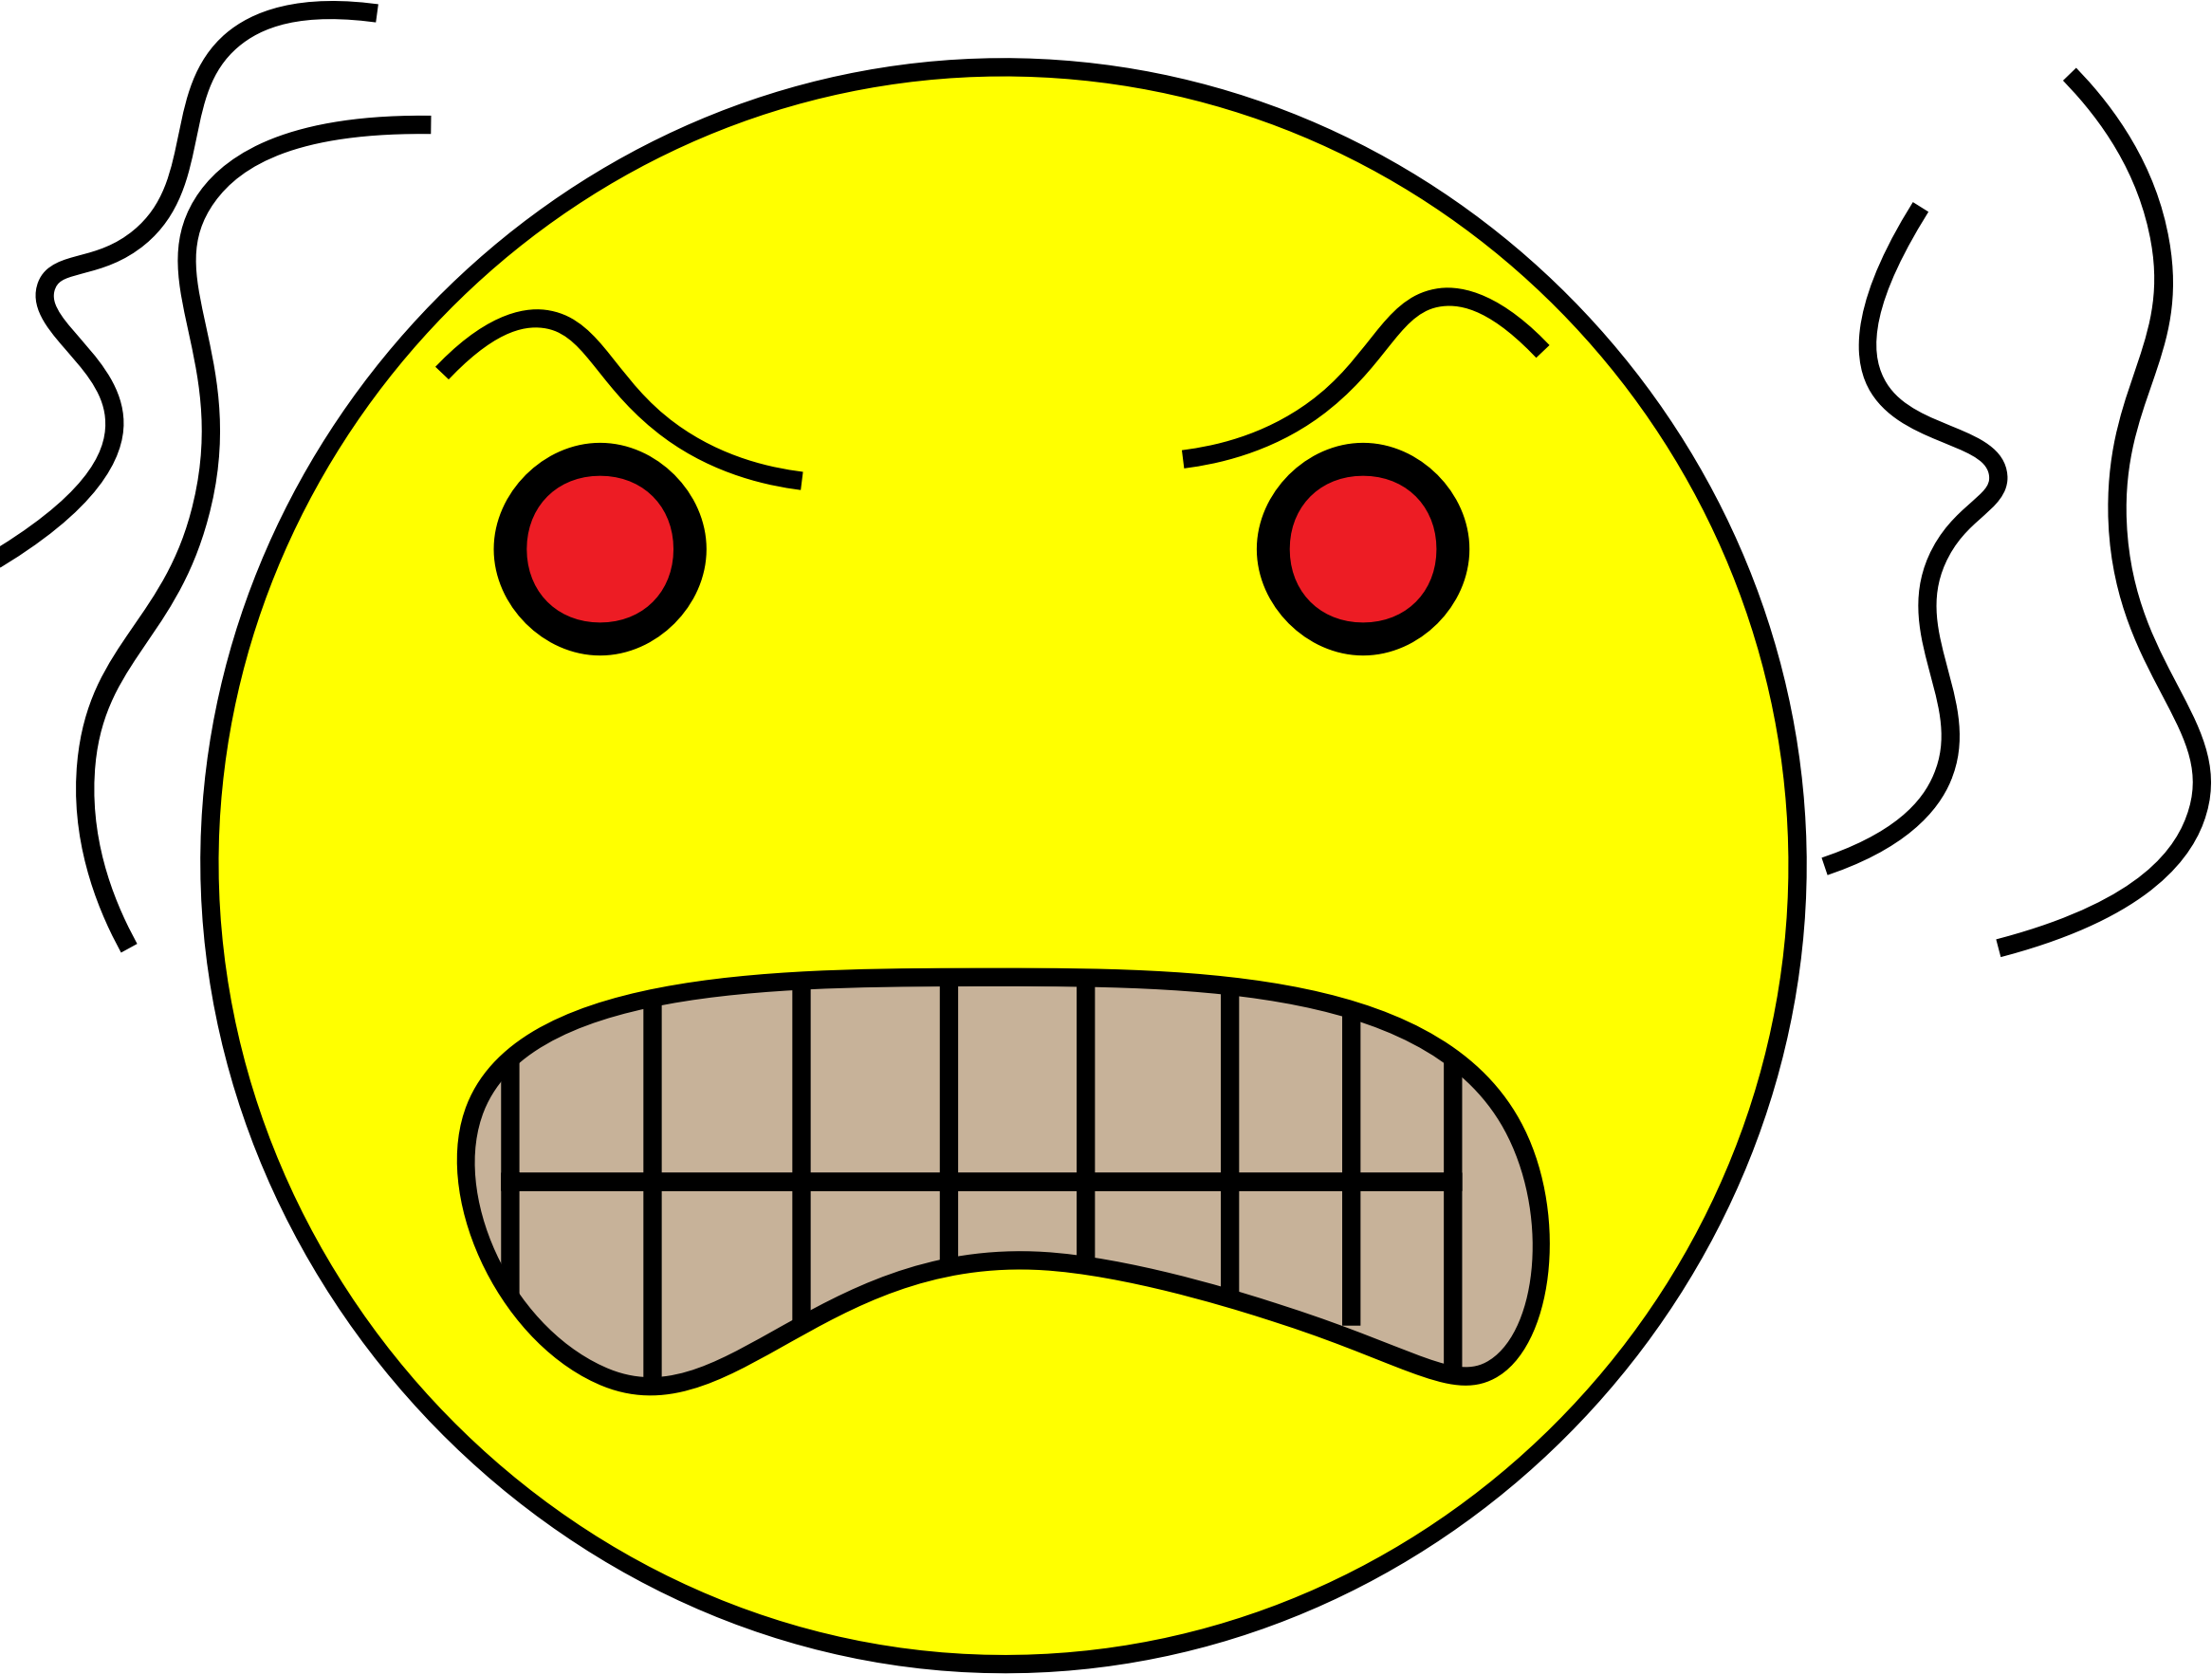 Yellow Angry Head by caliebschacher